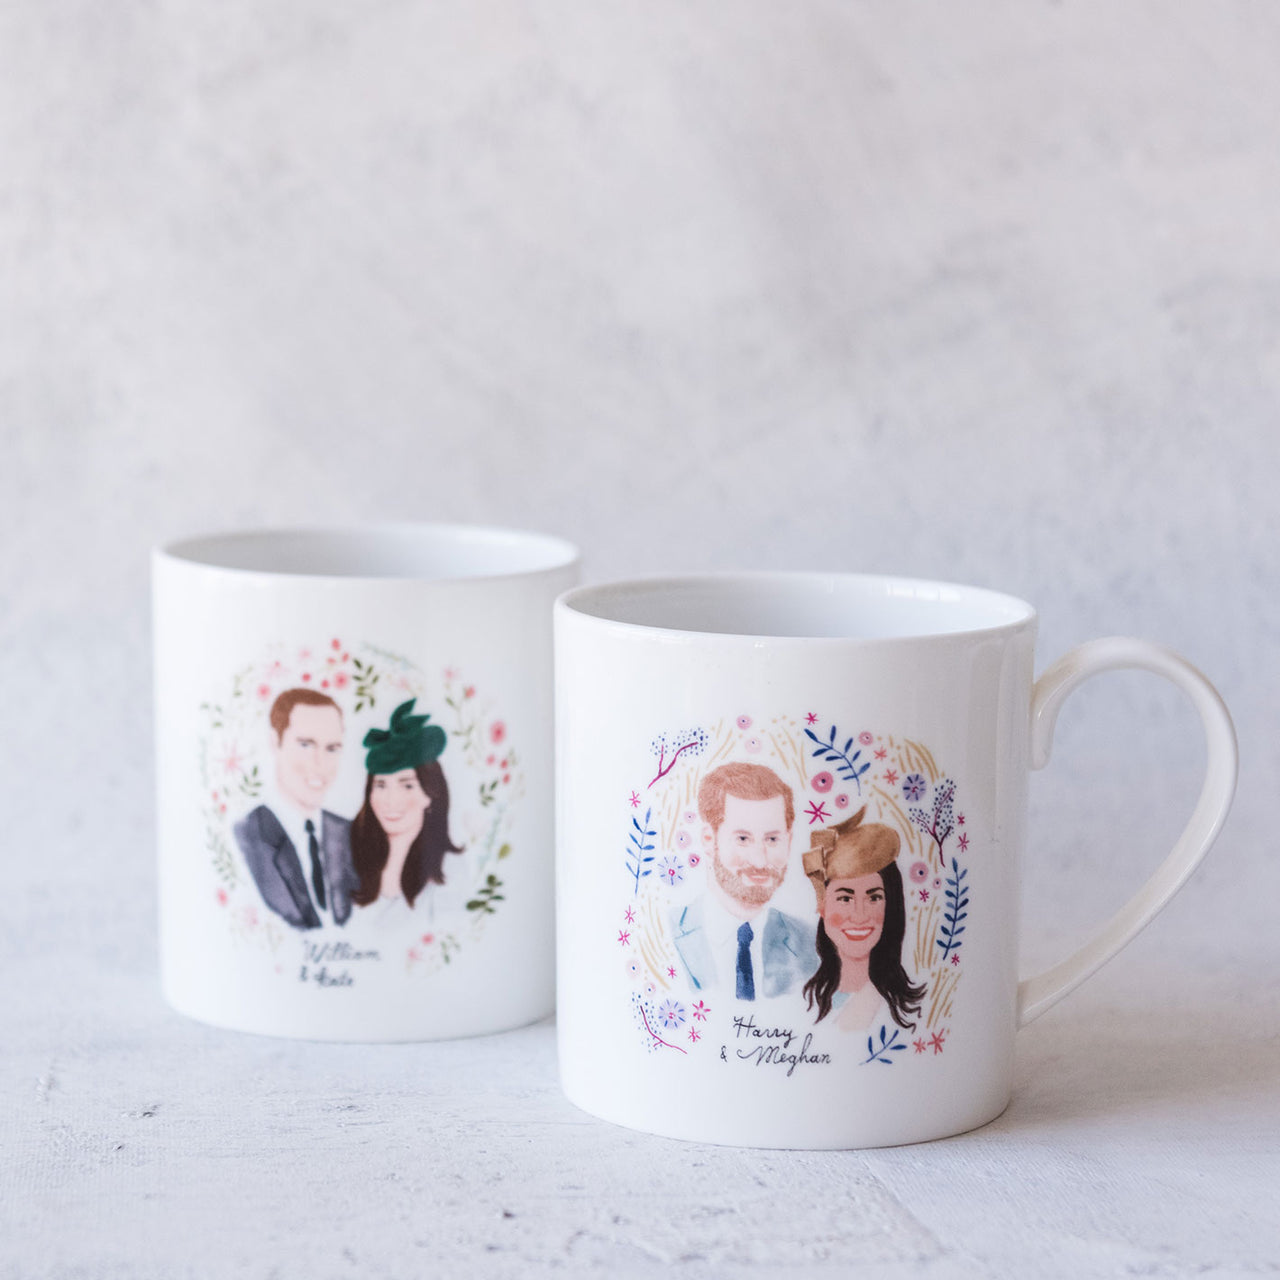 Harry & Meghan and William & Kate, Royal Wedding Commemorative Mug Set